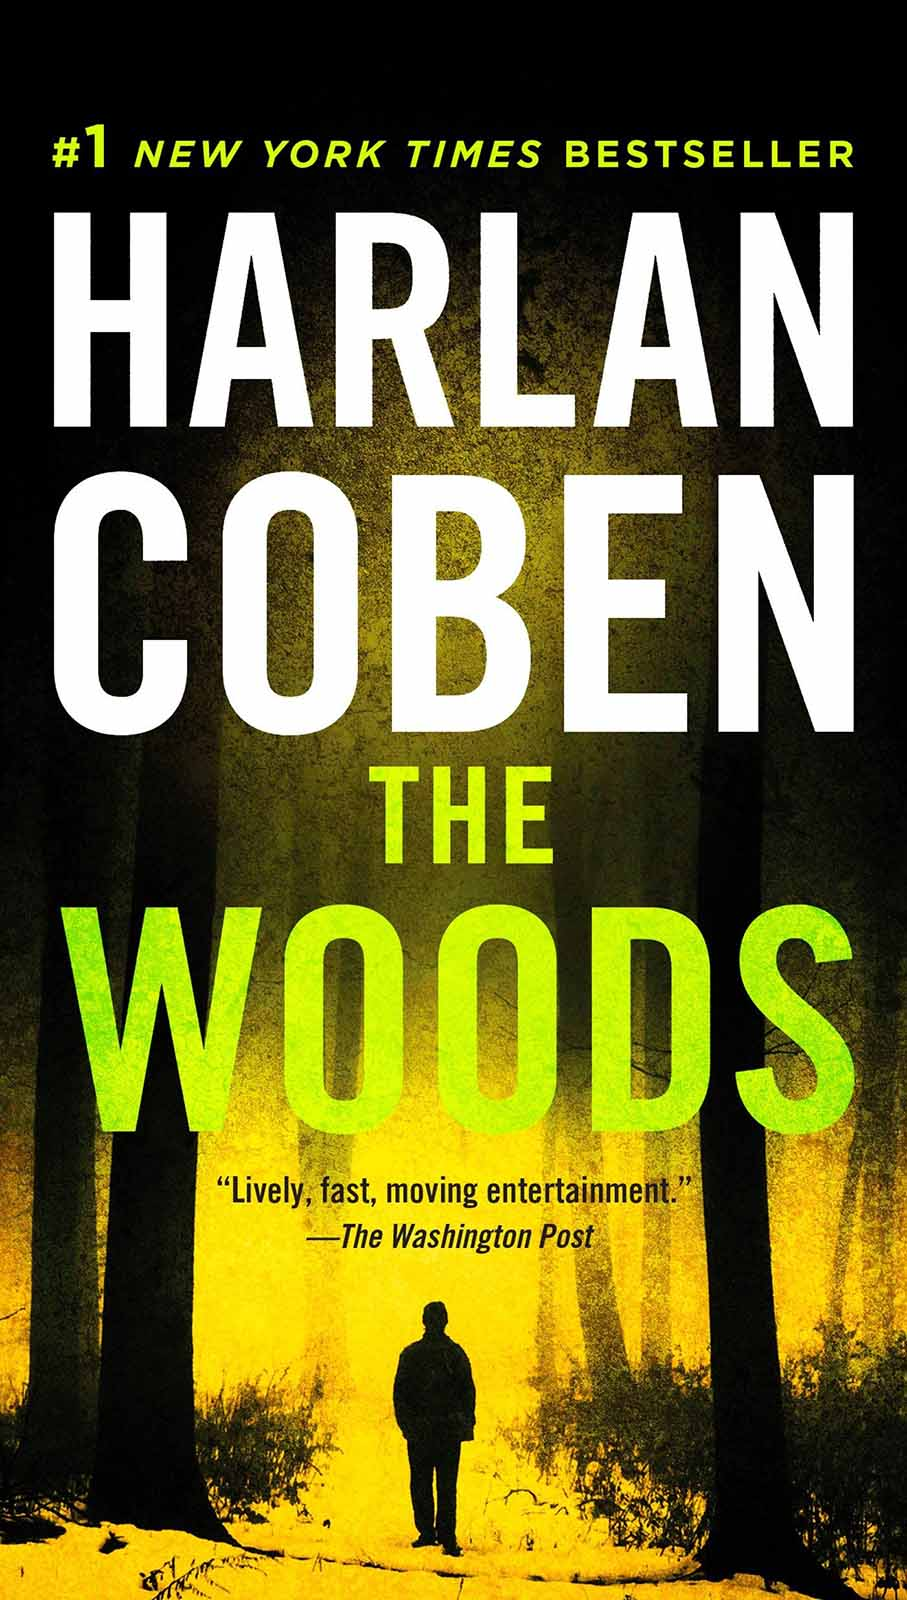 'The Stranger' brought Harlen Coben's novel to life for Netflix audiences to love. Now, his next book will keep fans entertained as a summer Netflix binge.